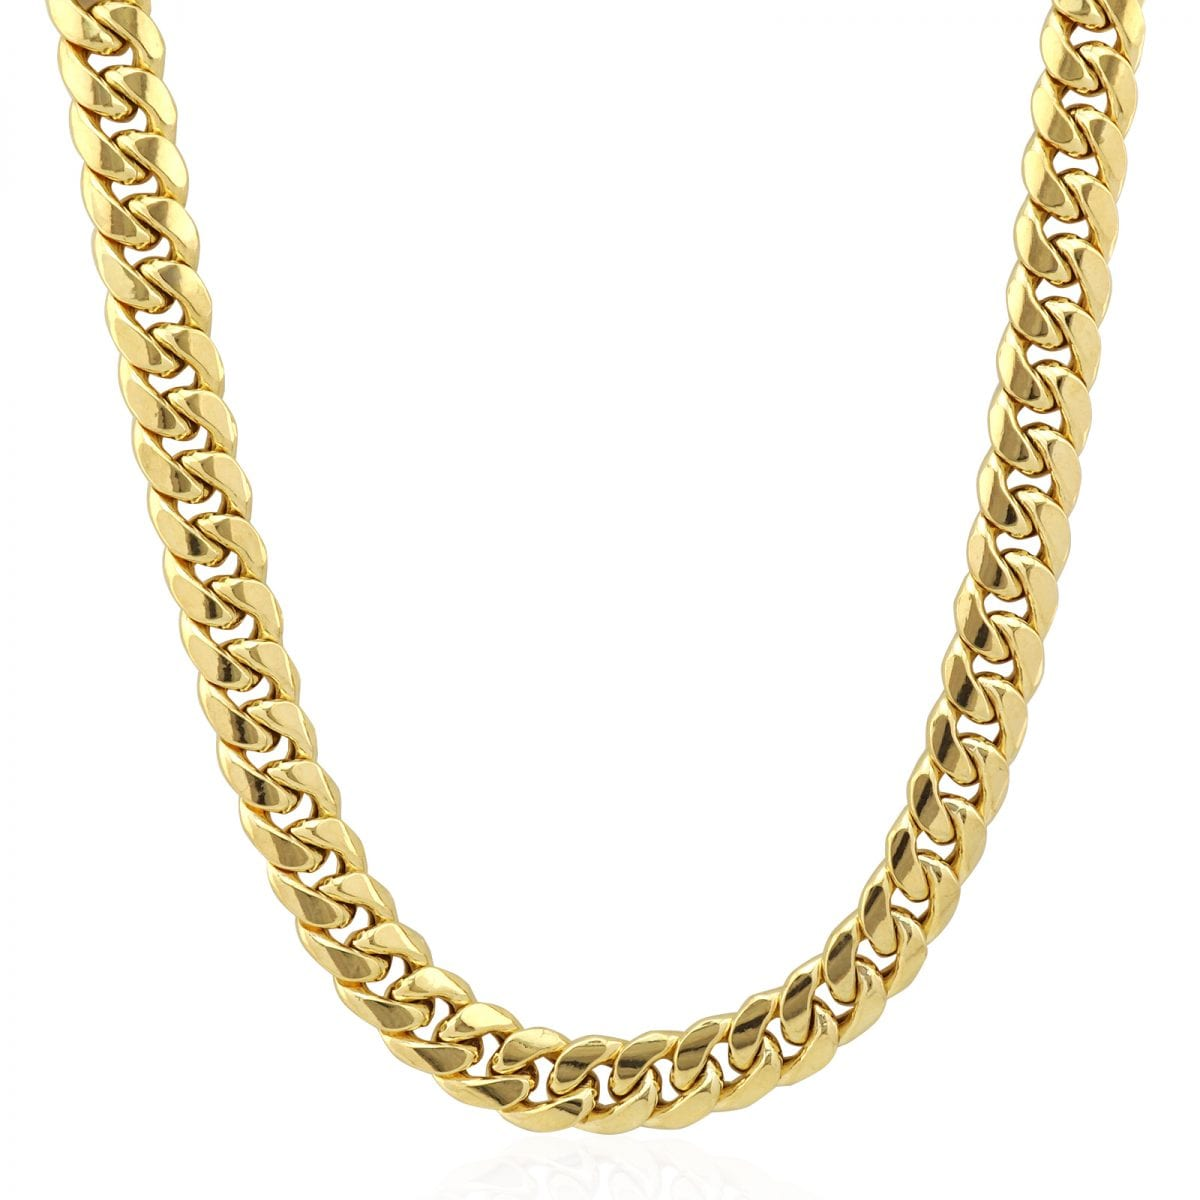 10k Yellow Gold 8mm Wide Miami Cuban Link Box Clasp Lock